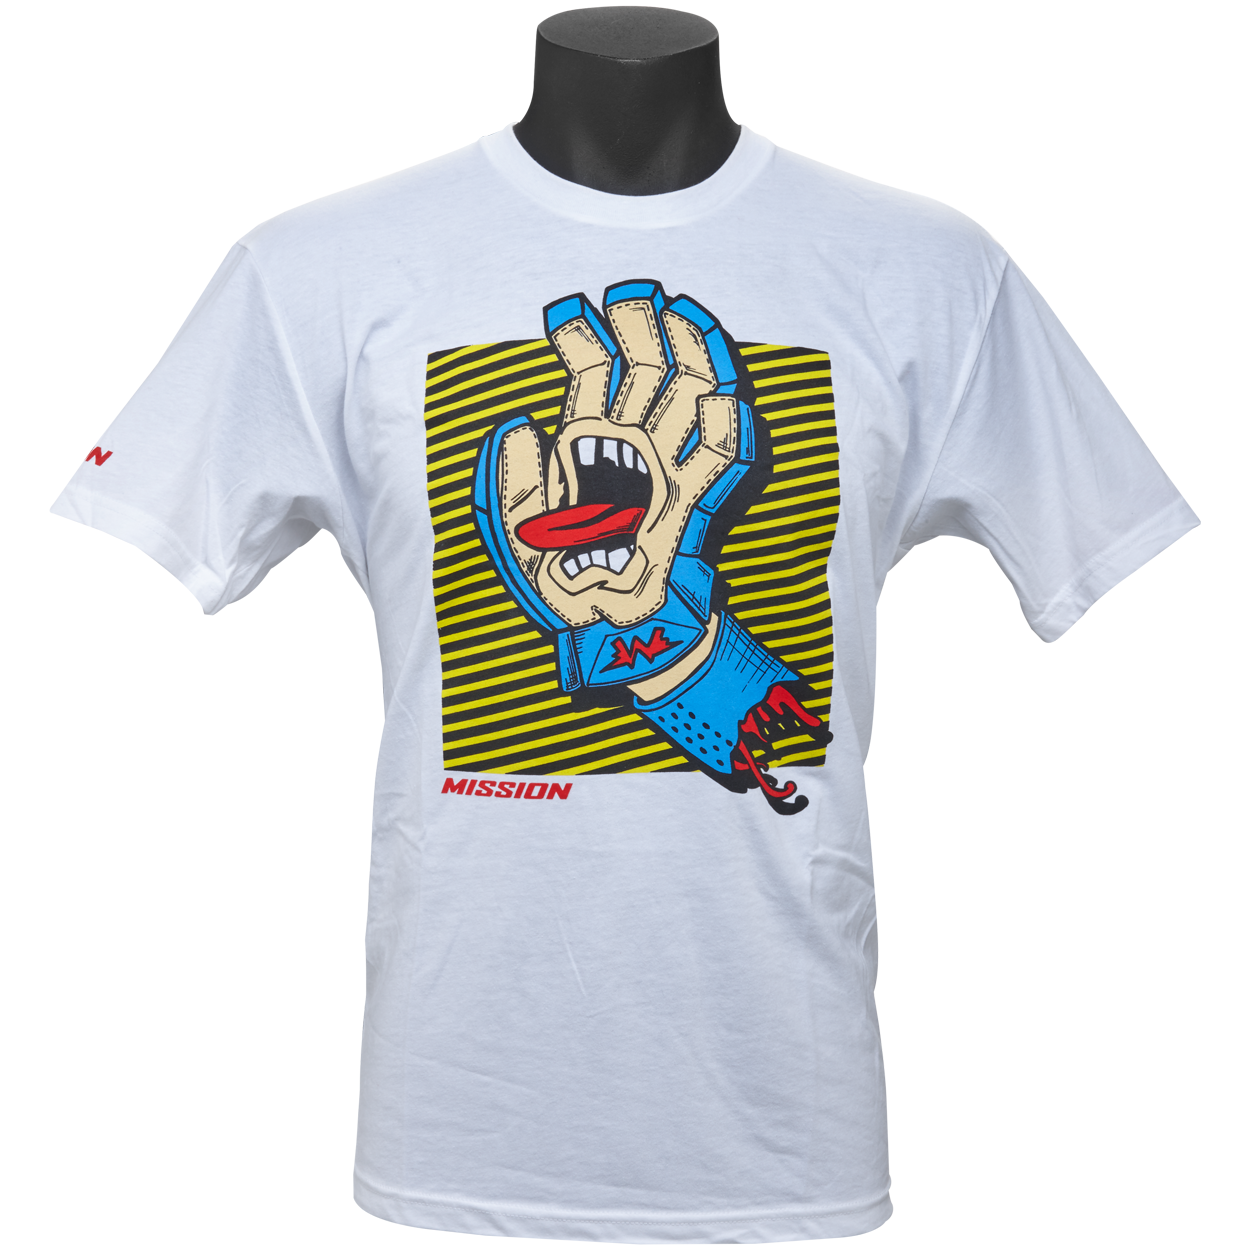 MISSION Screaming Glove T-Shirt Senior,,medium